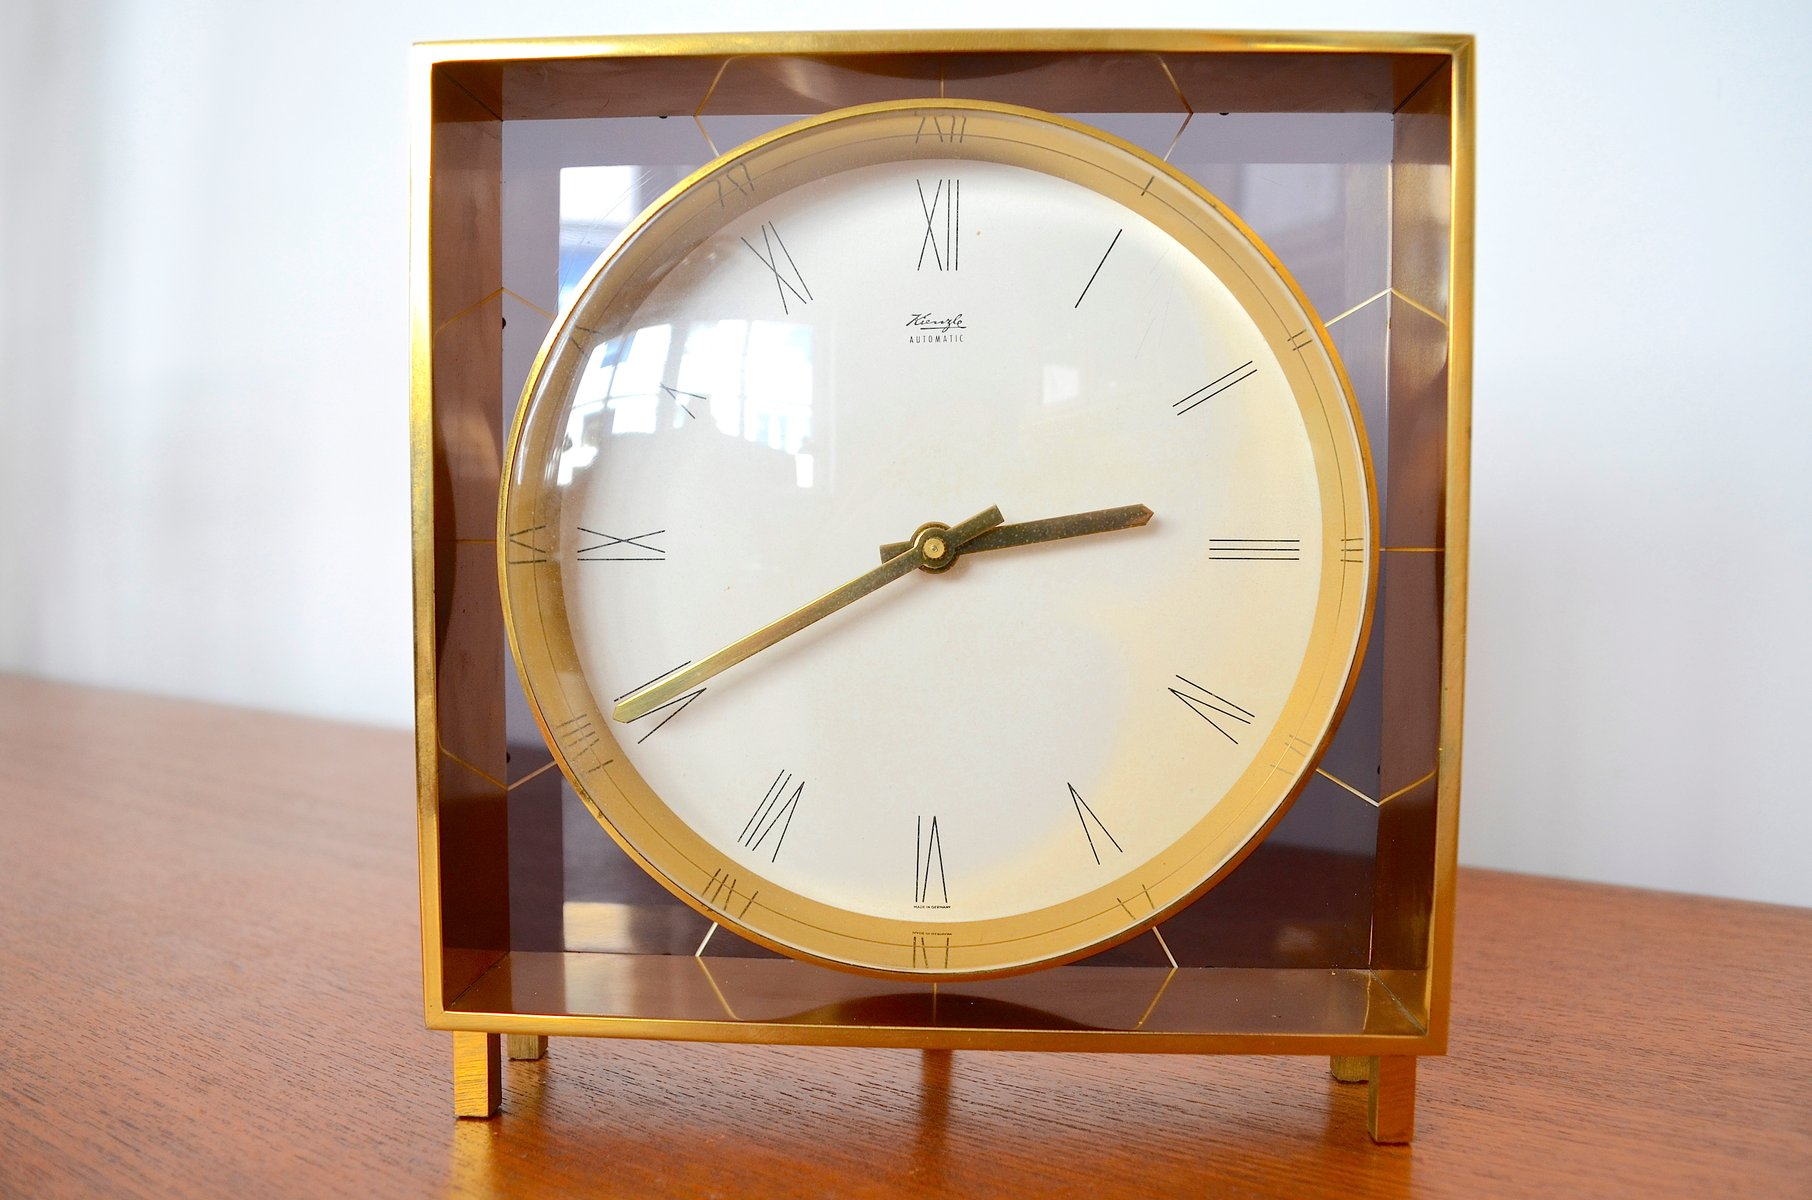 Mid century clocks online shop shop mid century clocks at pamono german table clock by heinrich mller for kienzle 1960s amipublicfo Choice Image